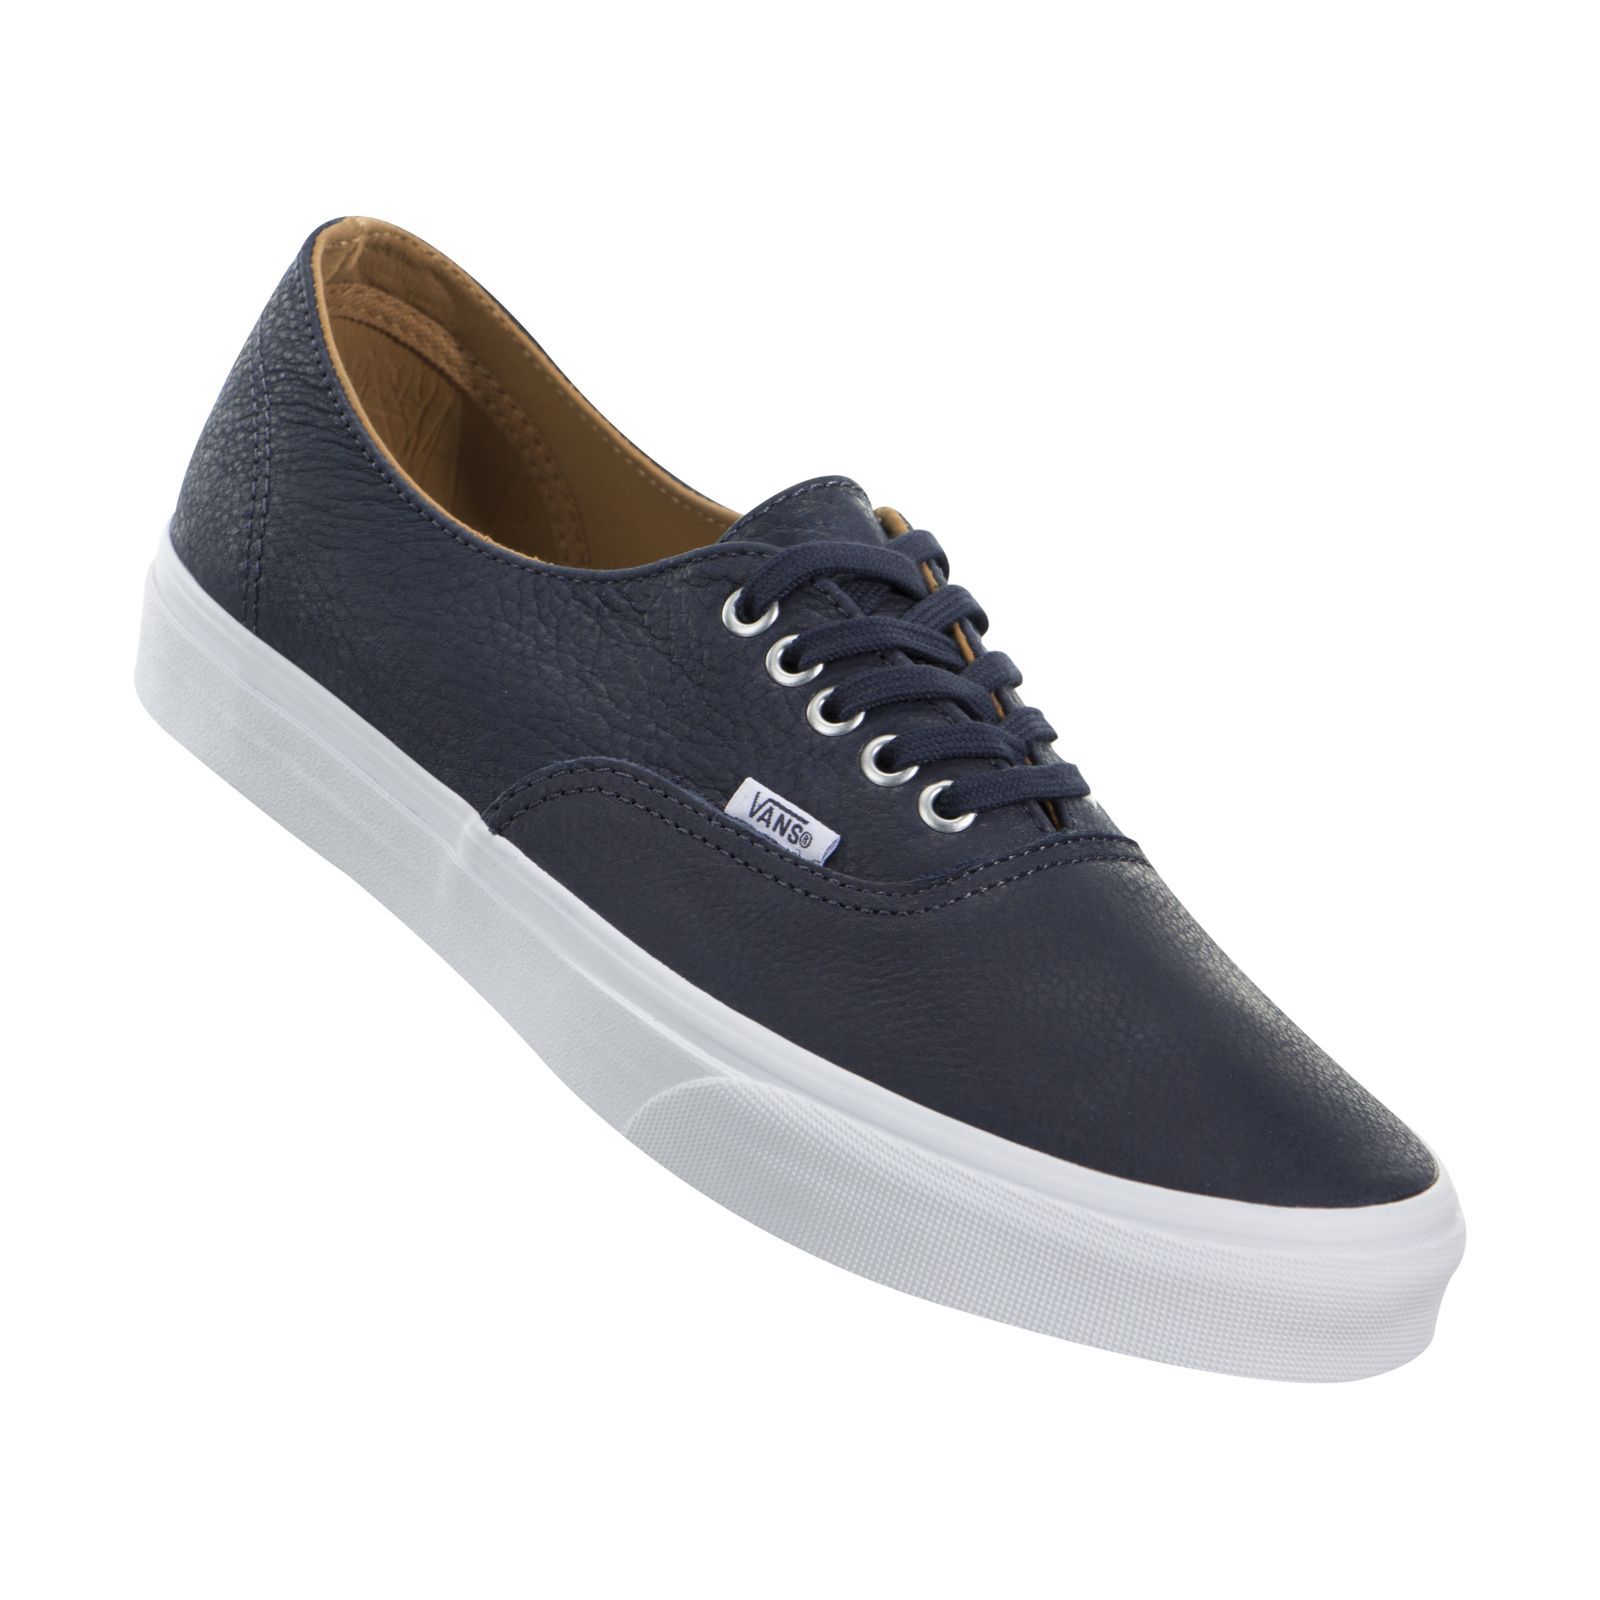 7a5fb33fad8 Vans Authentic Decon (Premium Leather) vn0a38epmru